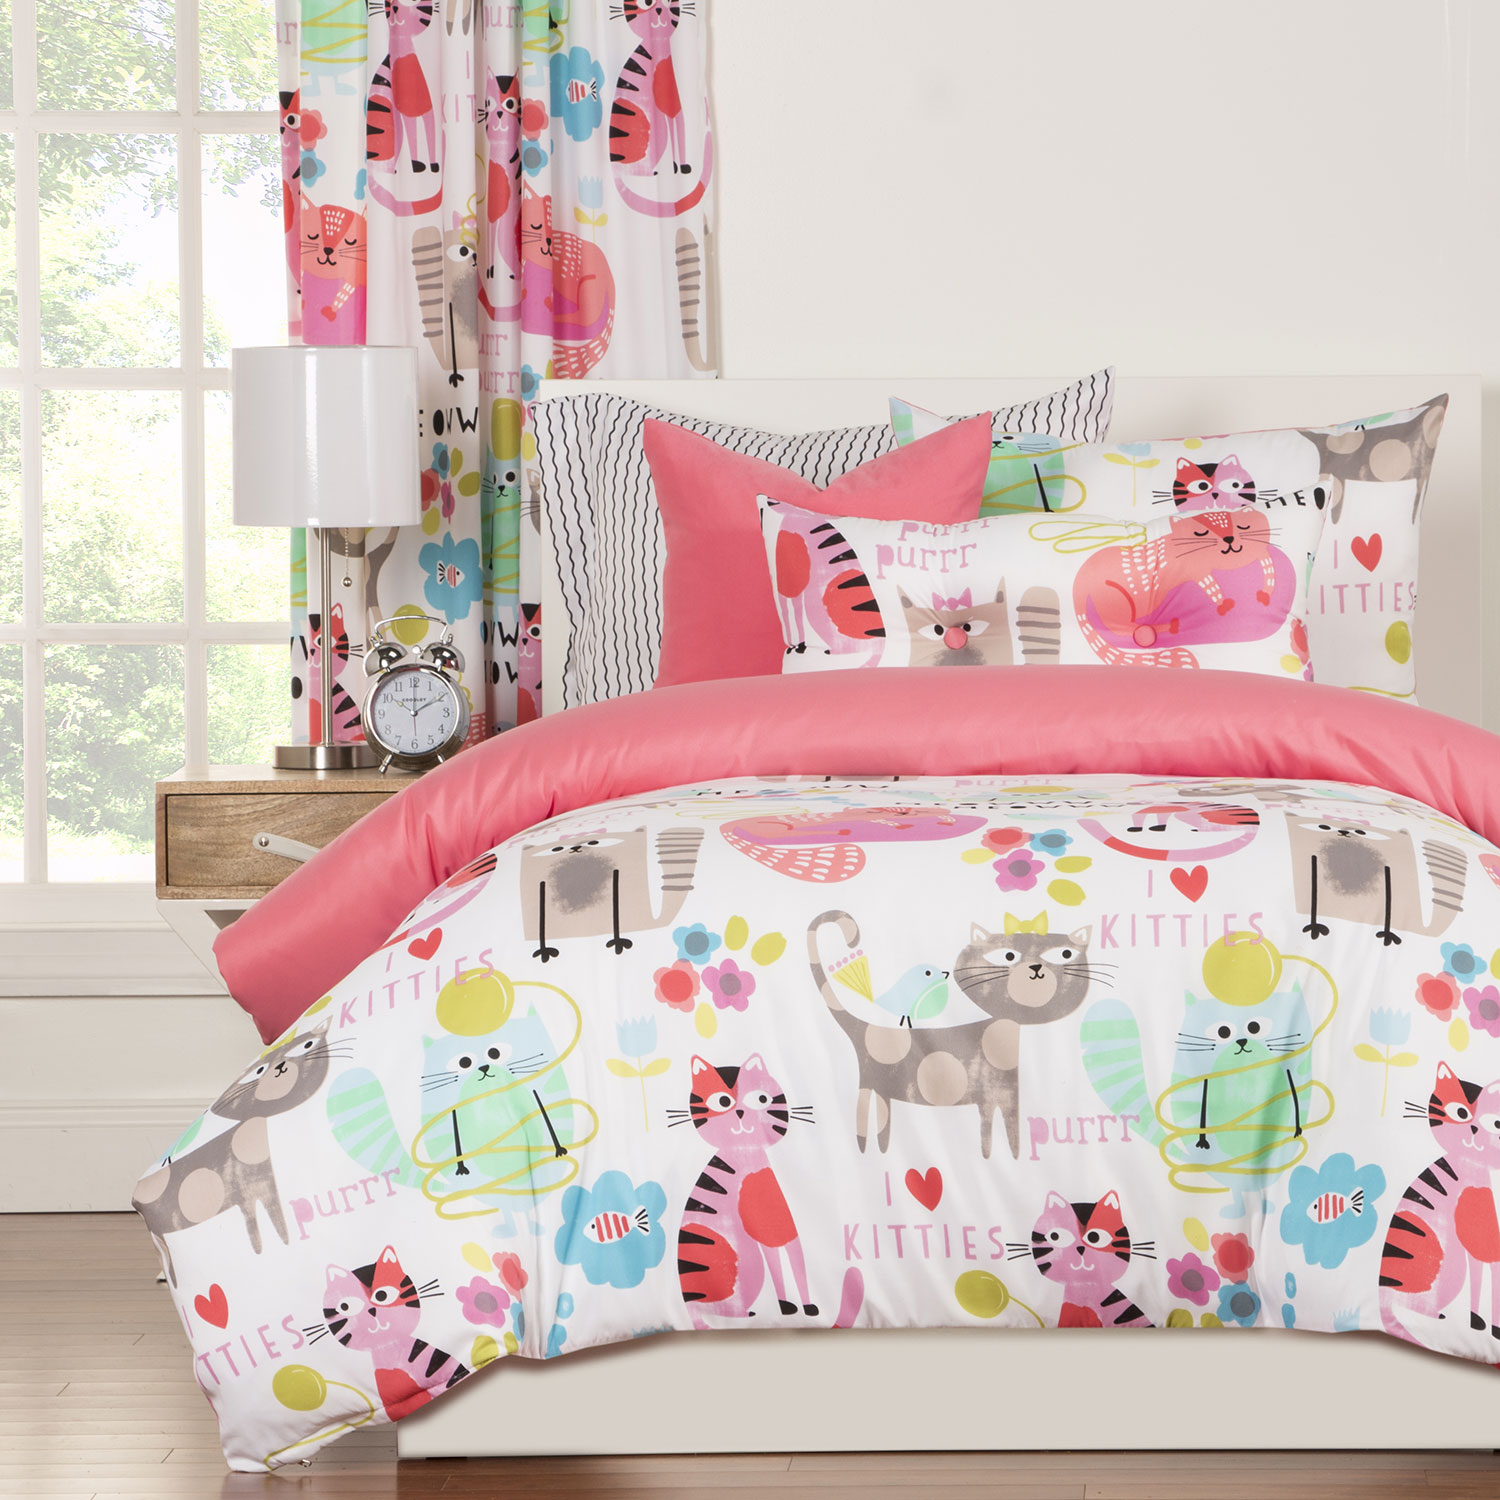 Purrty Cat By Crayola Bedding